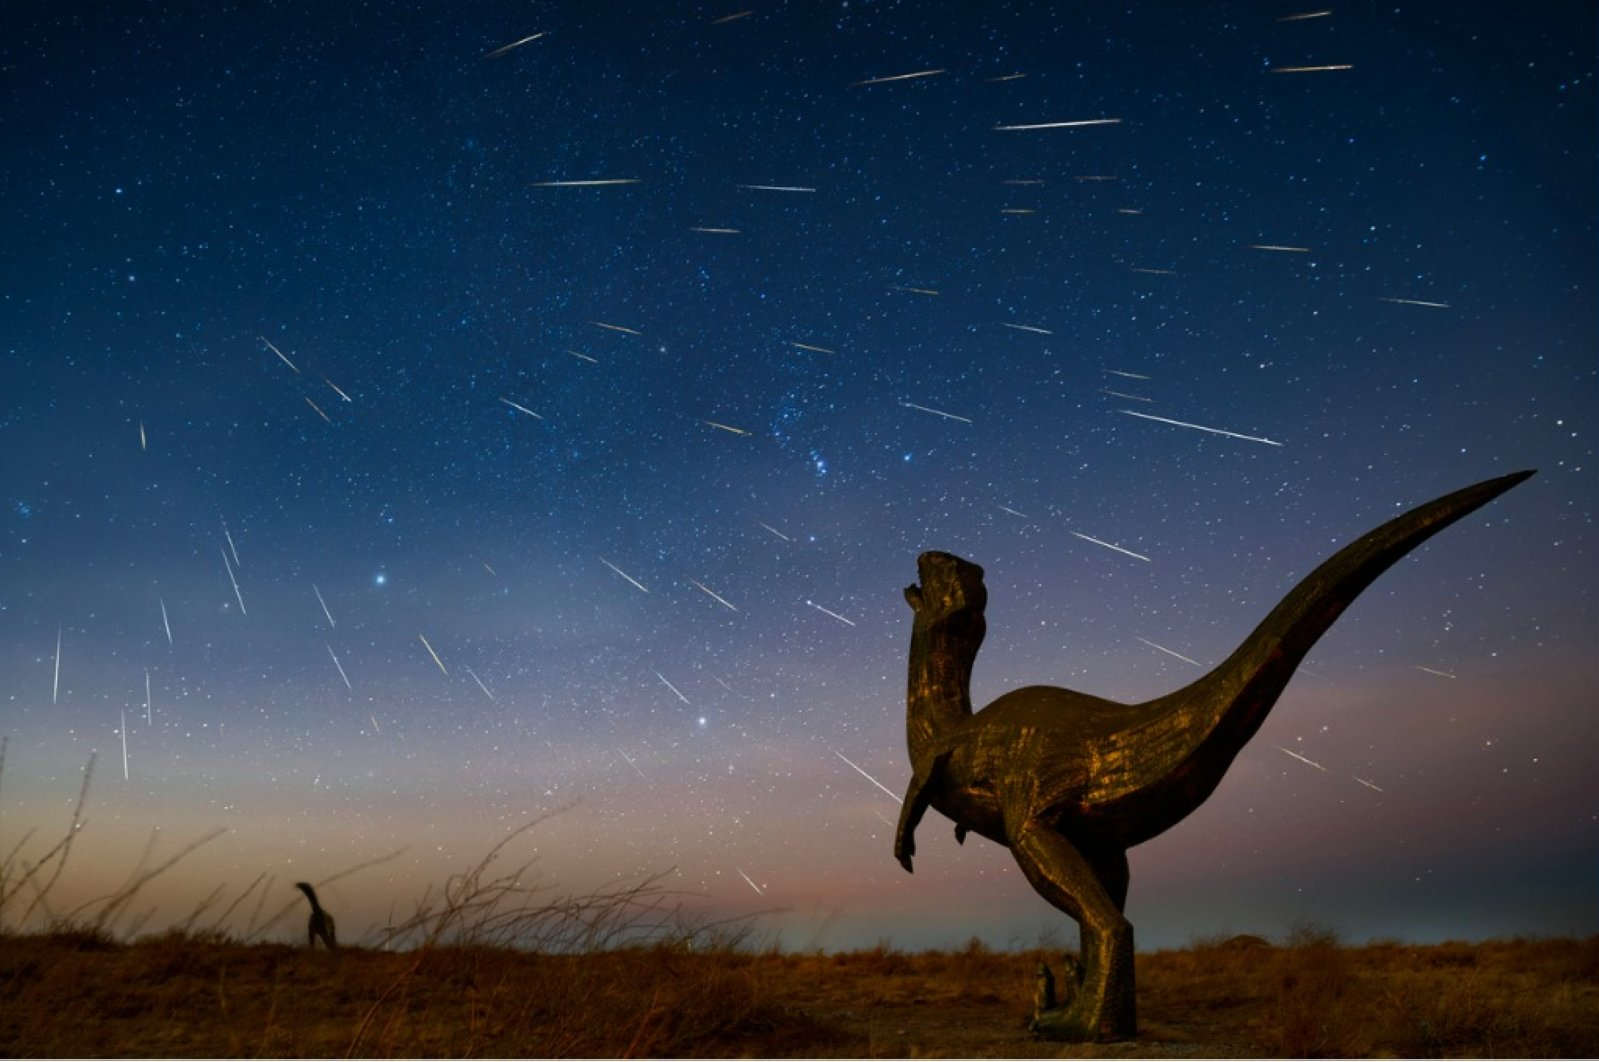 The trajectory of the killer asteroid was just right to cause maximum damage. (iStock Photo)